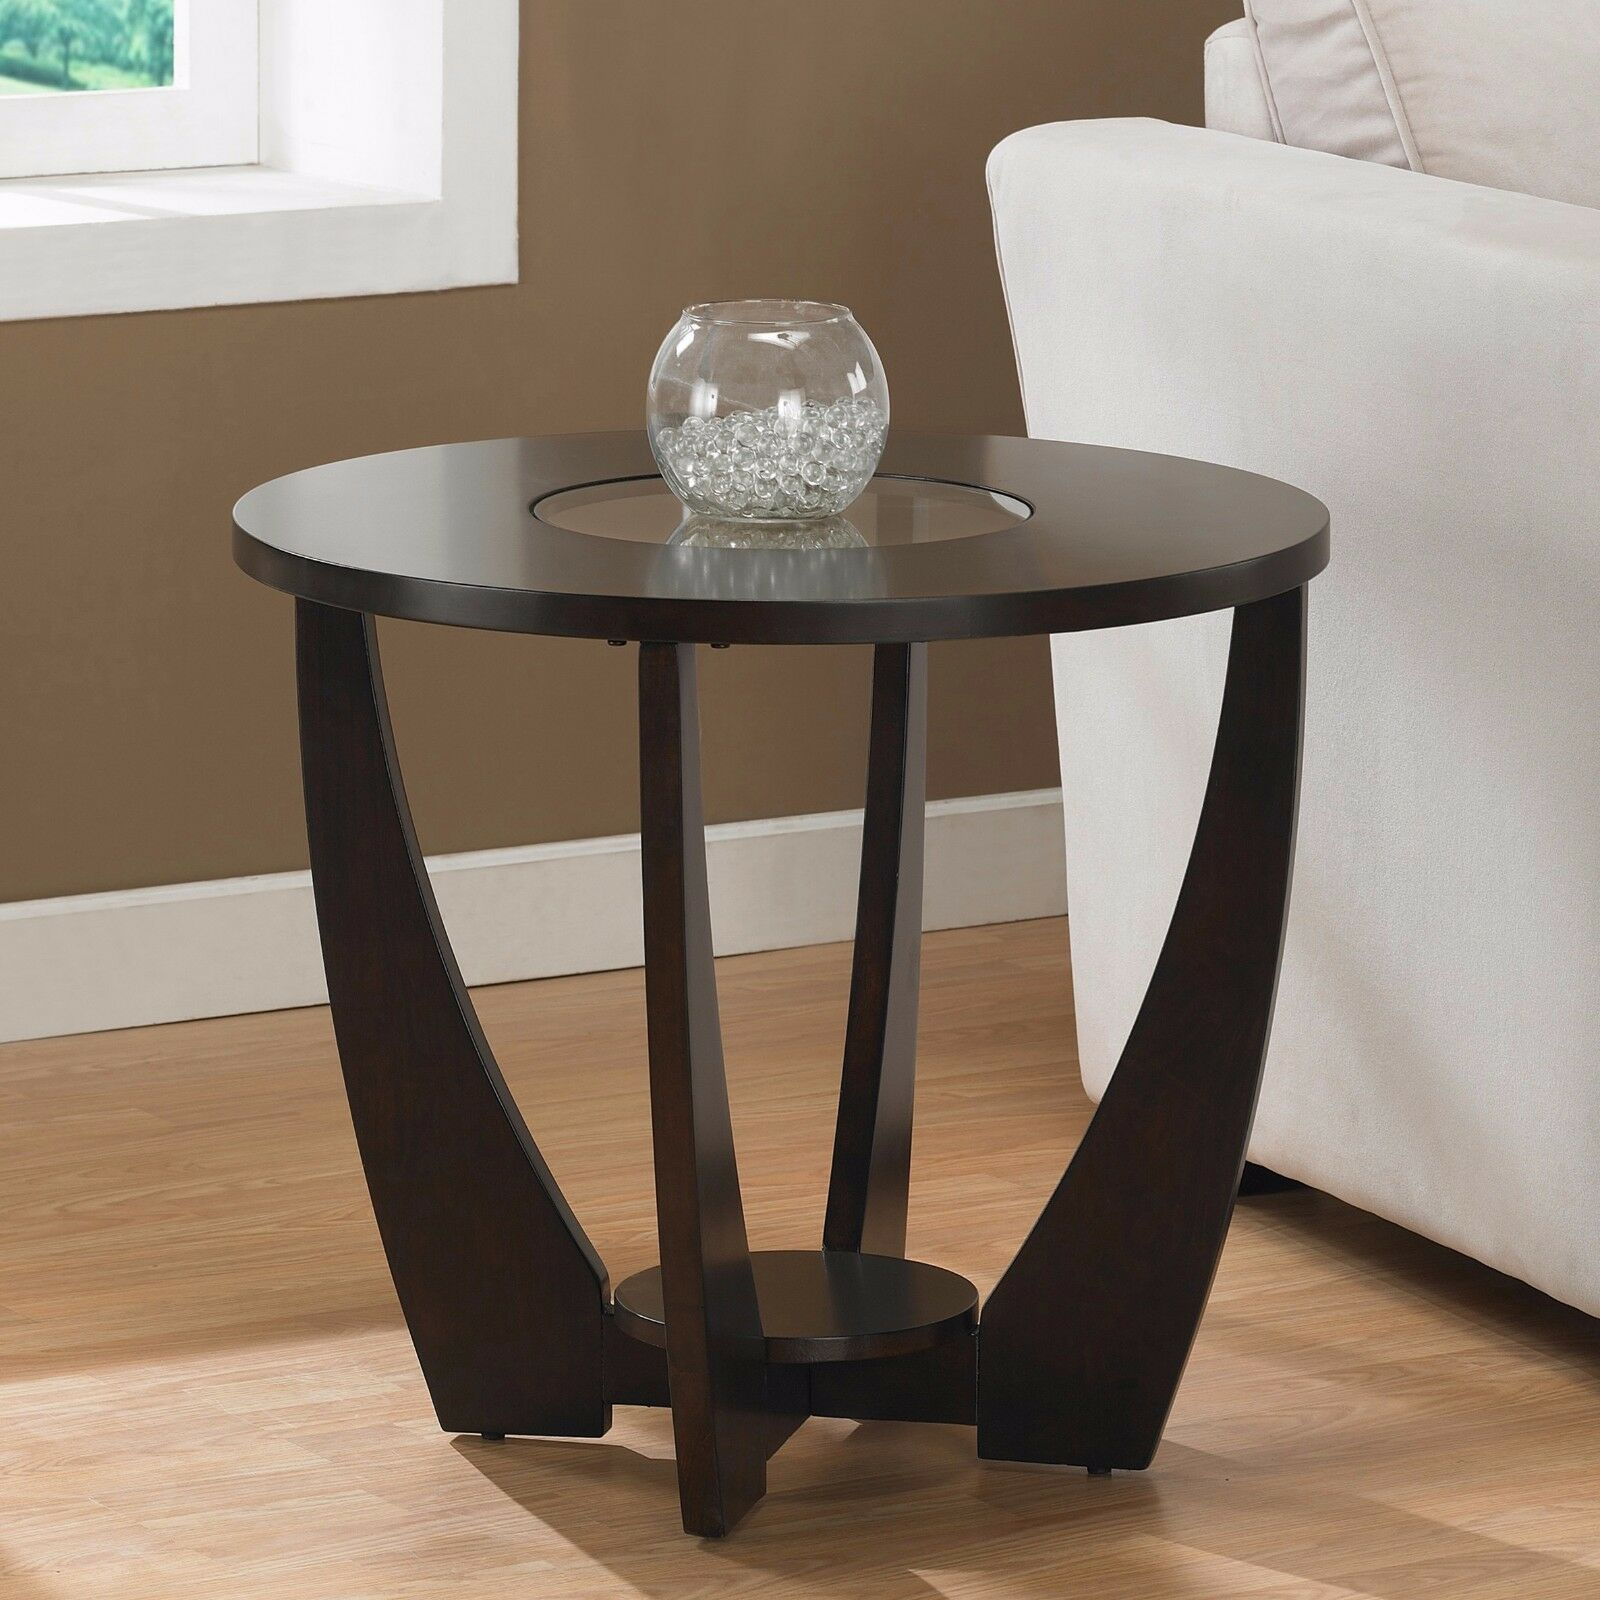 Wooden Side Tables For Living Room: Dark Brown Round End Table With Glass Top Living Room